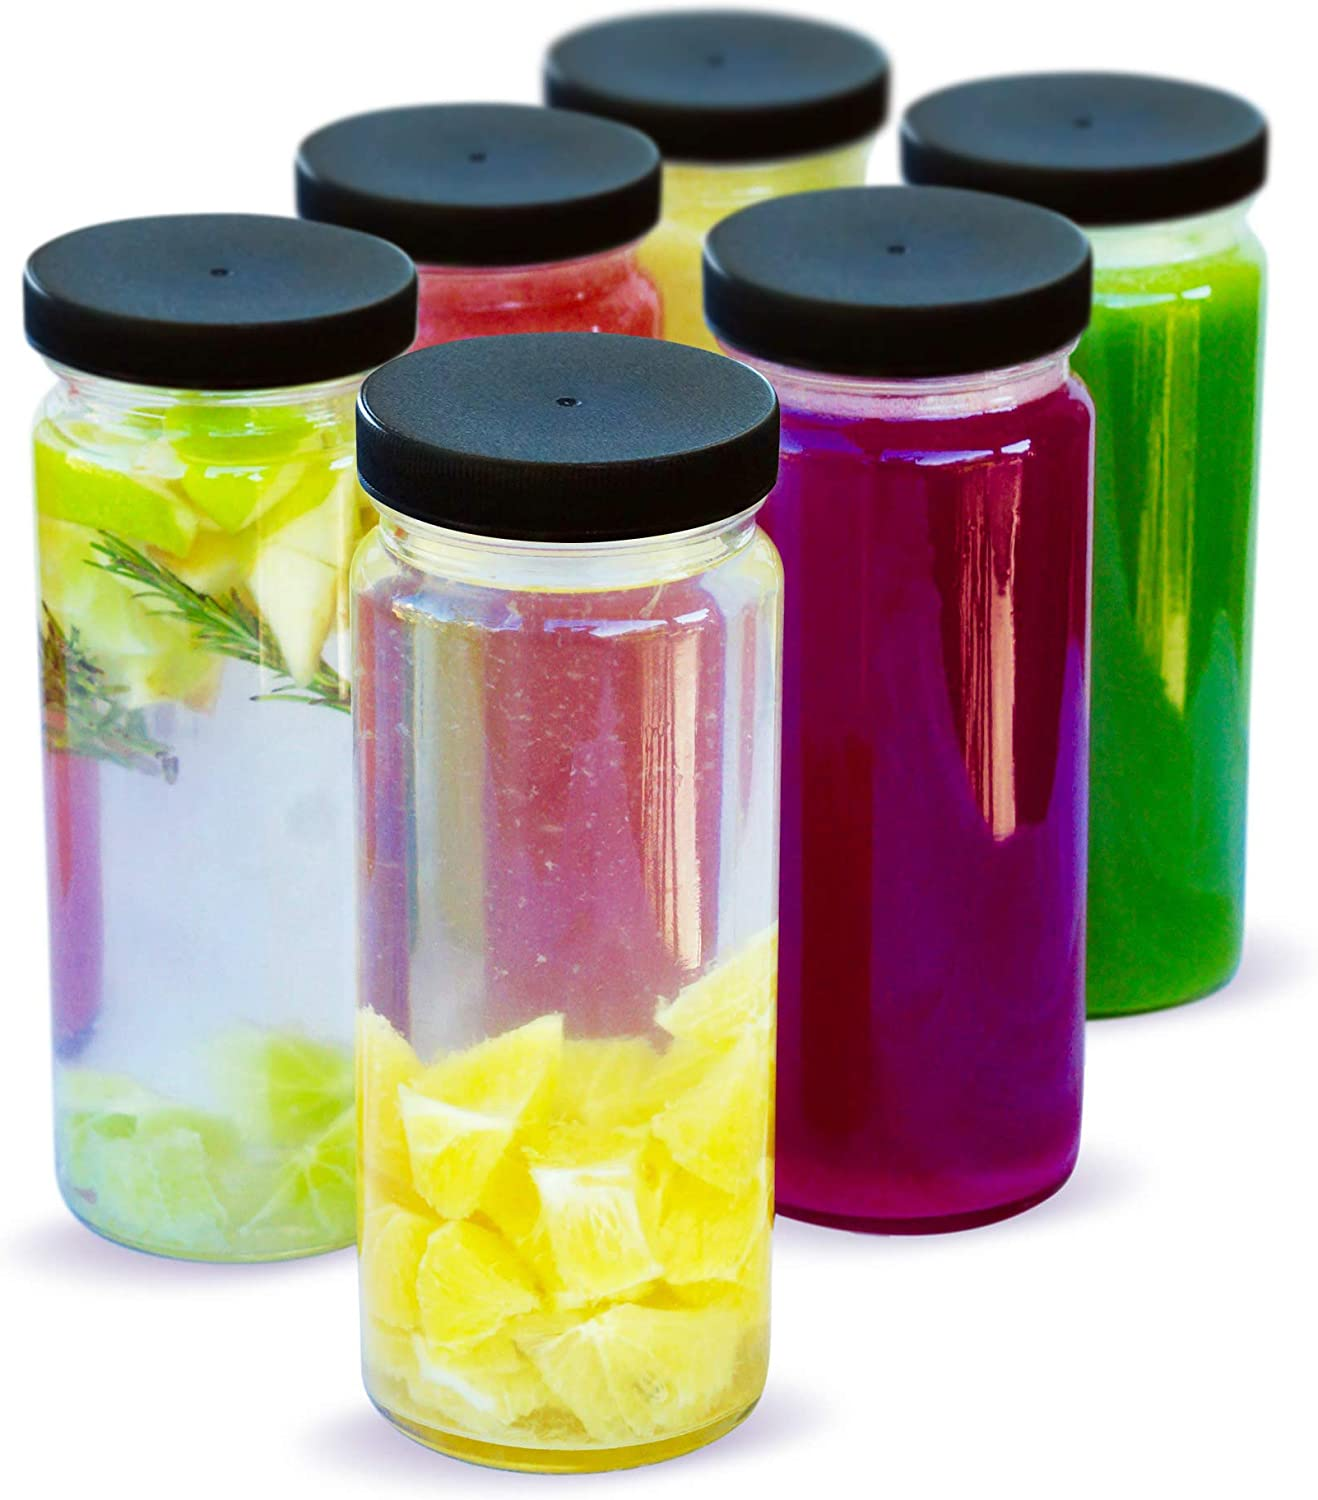 Leak Proof 6 Pack Wide Mouth with Lids for Juice 16 oz Smoothies Eco Friendly /& BPA Free Dishwasher Safe Beverage Storage Reusable Black Caps Durable Glass Water Bottles Set Clear